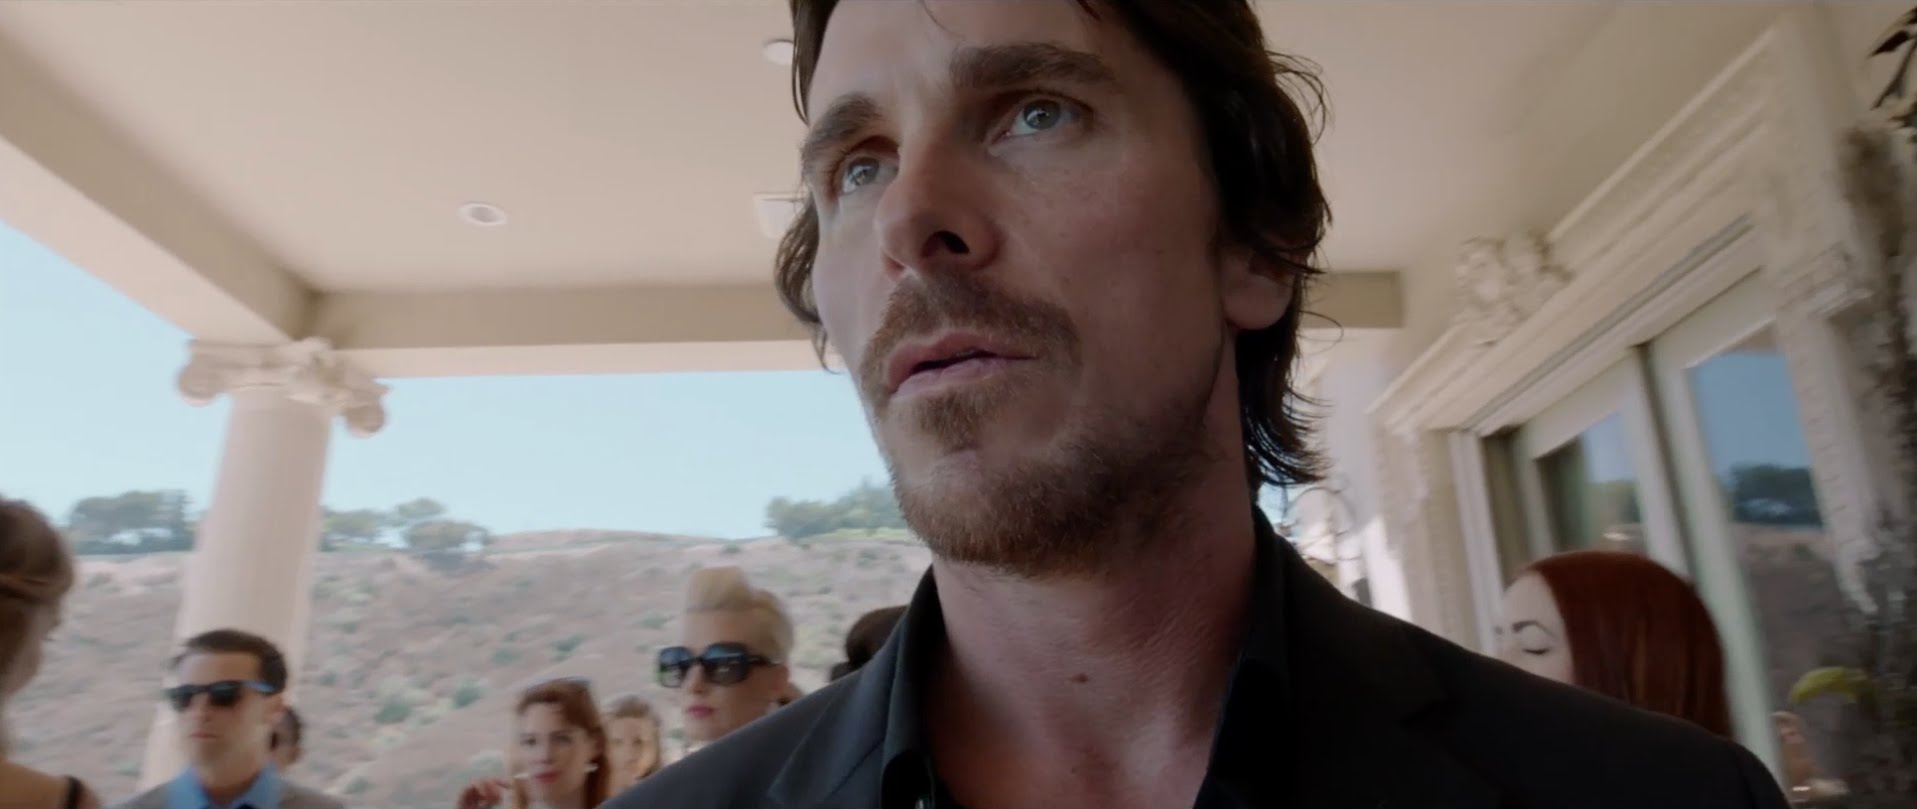 Here, Christian Bale isn't used as a star, but as a man, no more significant than any other.